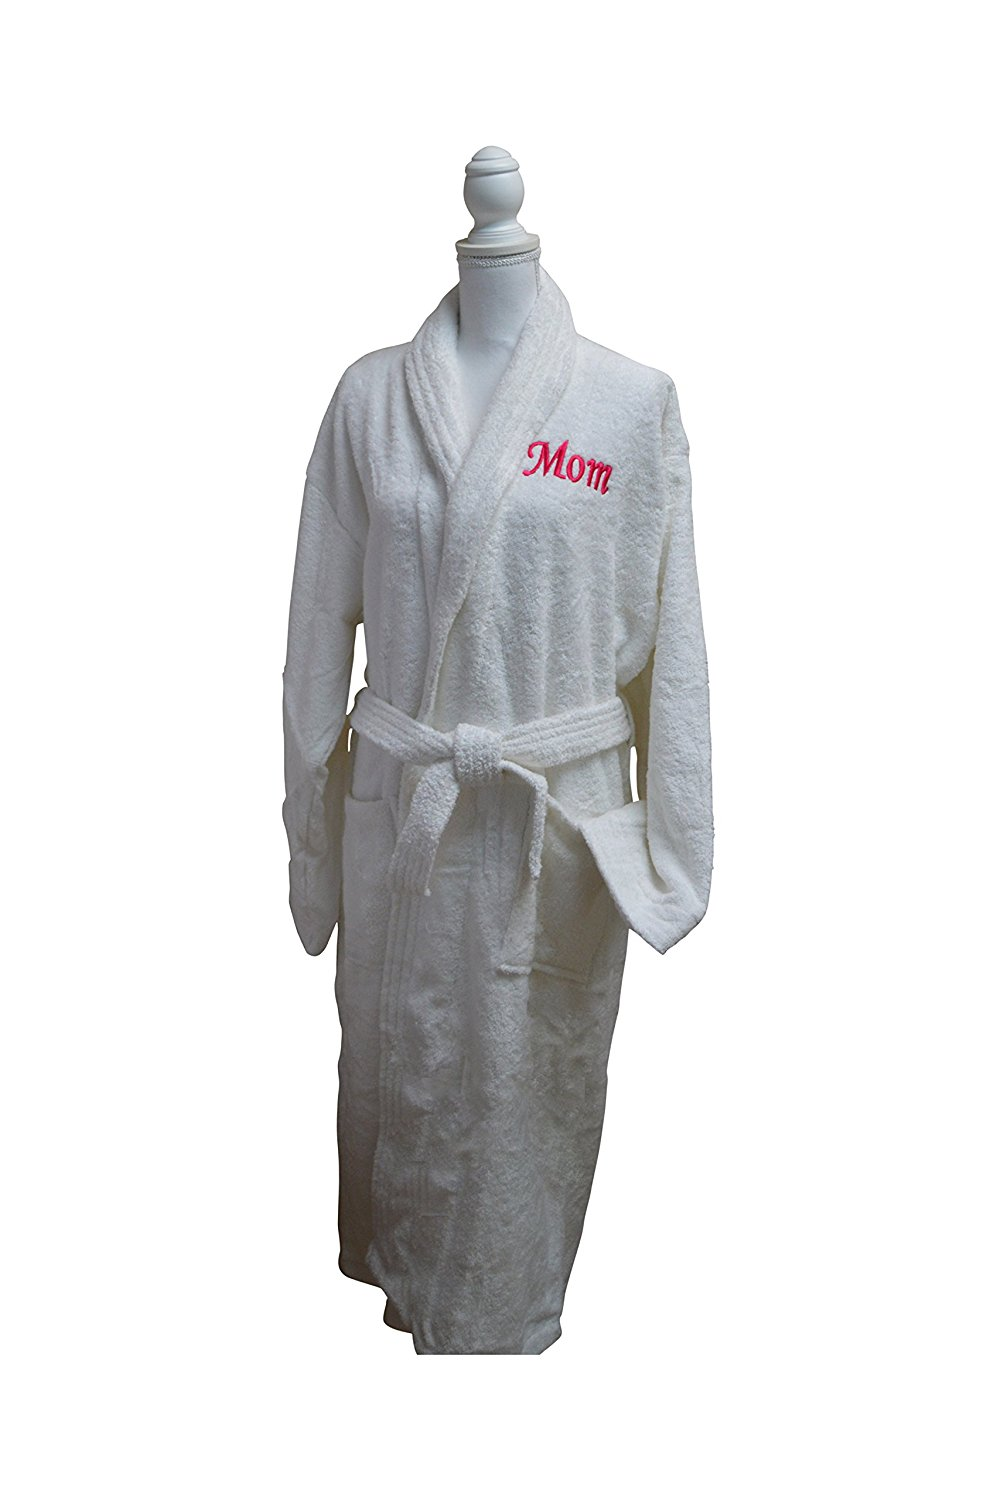 Get Quotations · Resort Spa Home Decor Mom Customized Monogrammed Embroidered  Luxury White Terry Cotton Spa Robe – b06843d69